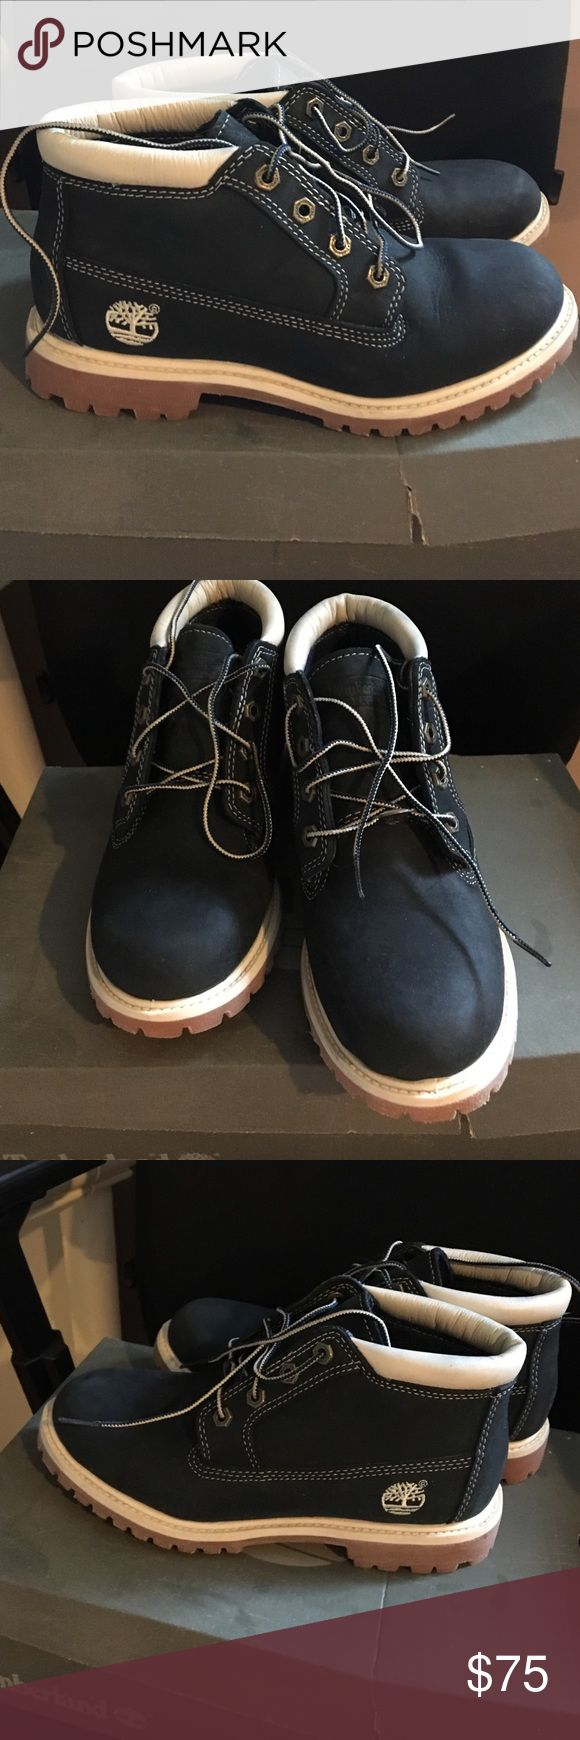 Woman's timberland boots Women's navy blue timberland boots. Water proof. Worn one time. Brand new condition. Timberland Shoes Winter & Rain Boots